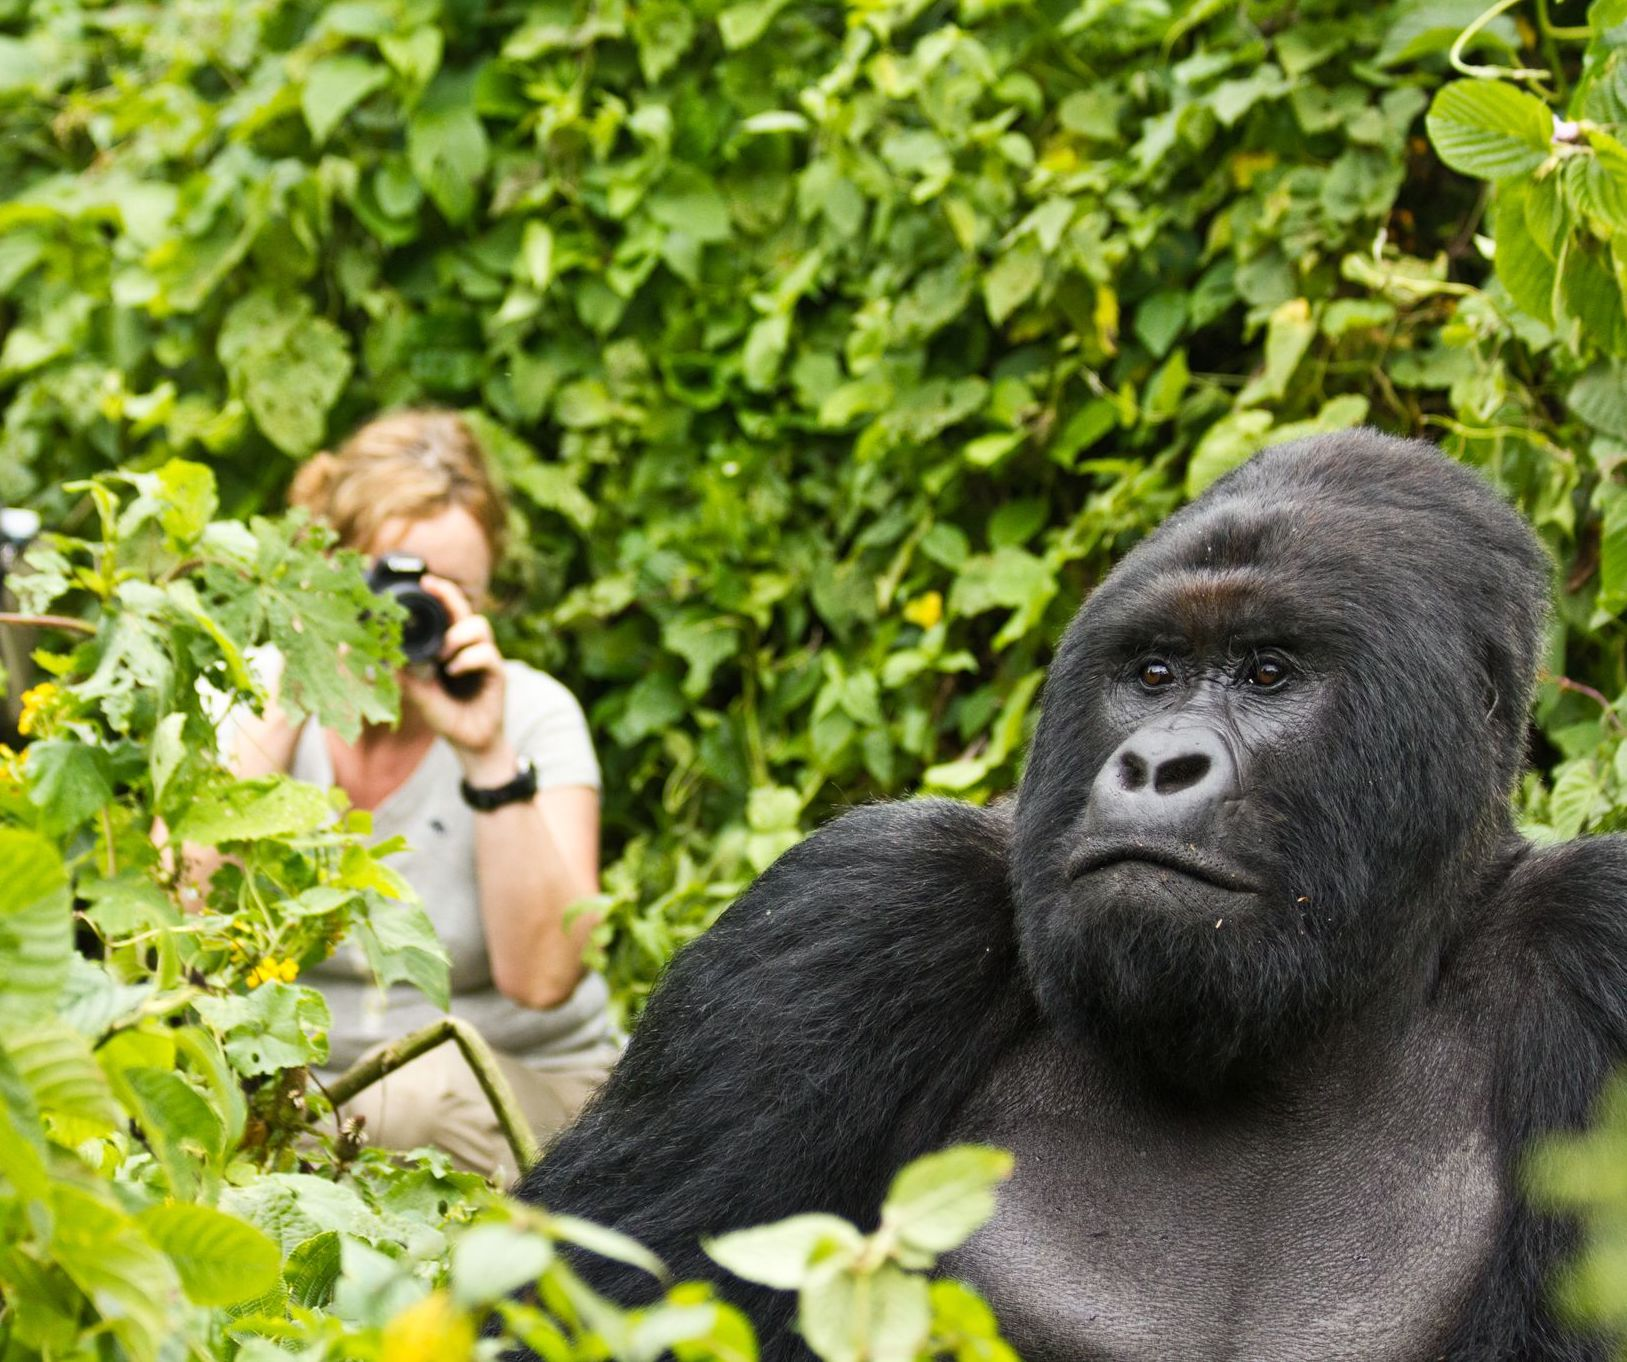 silverback gorilla sitting in the lush green foliage undisturbed by the tourist behind him taking a photo while gorilla viewing in Africa